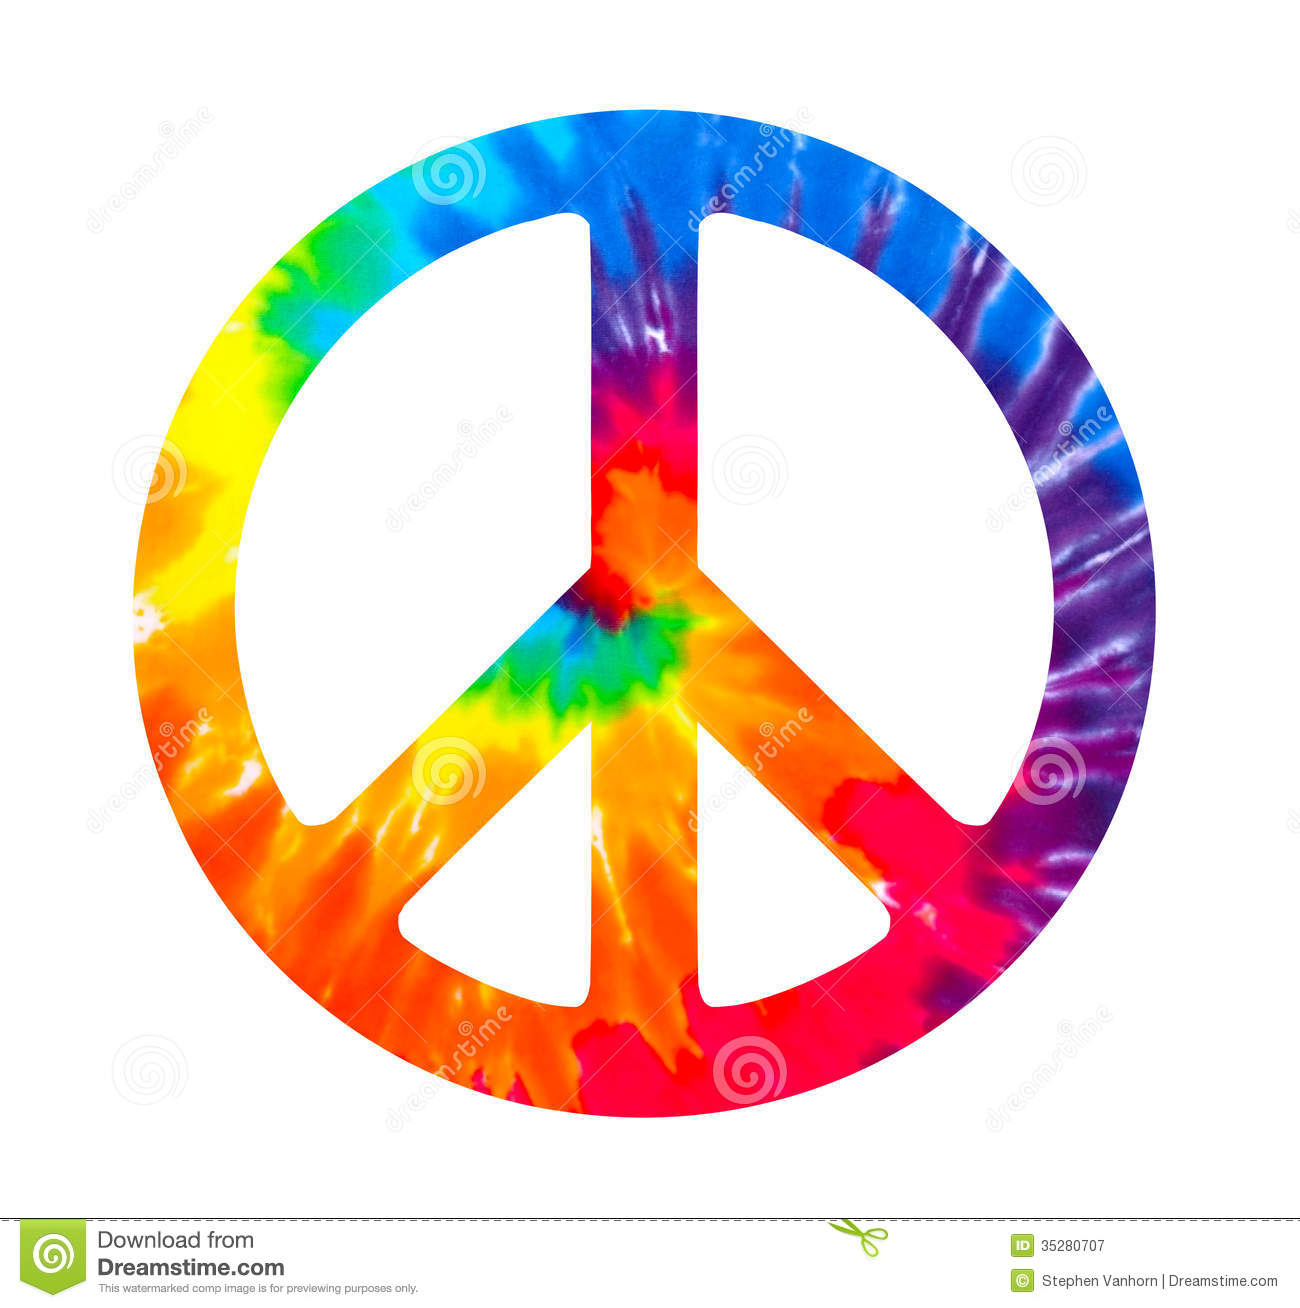 Peace symbol clipart free download best peace symbol clipart on 1300x1308 amazing peace sign images free rainbow clip art voltagebd Choice Image